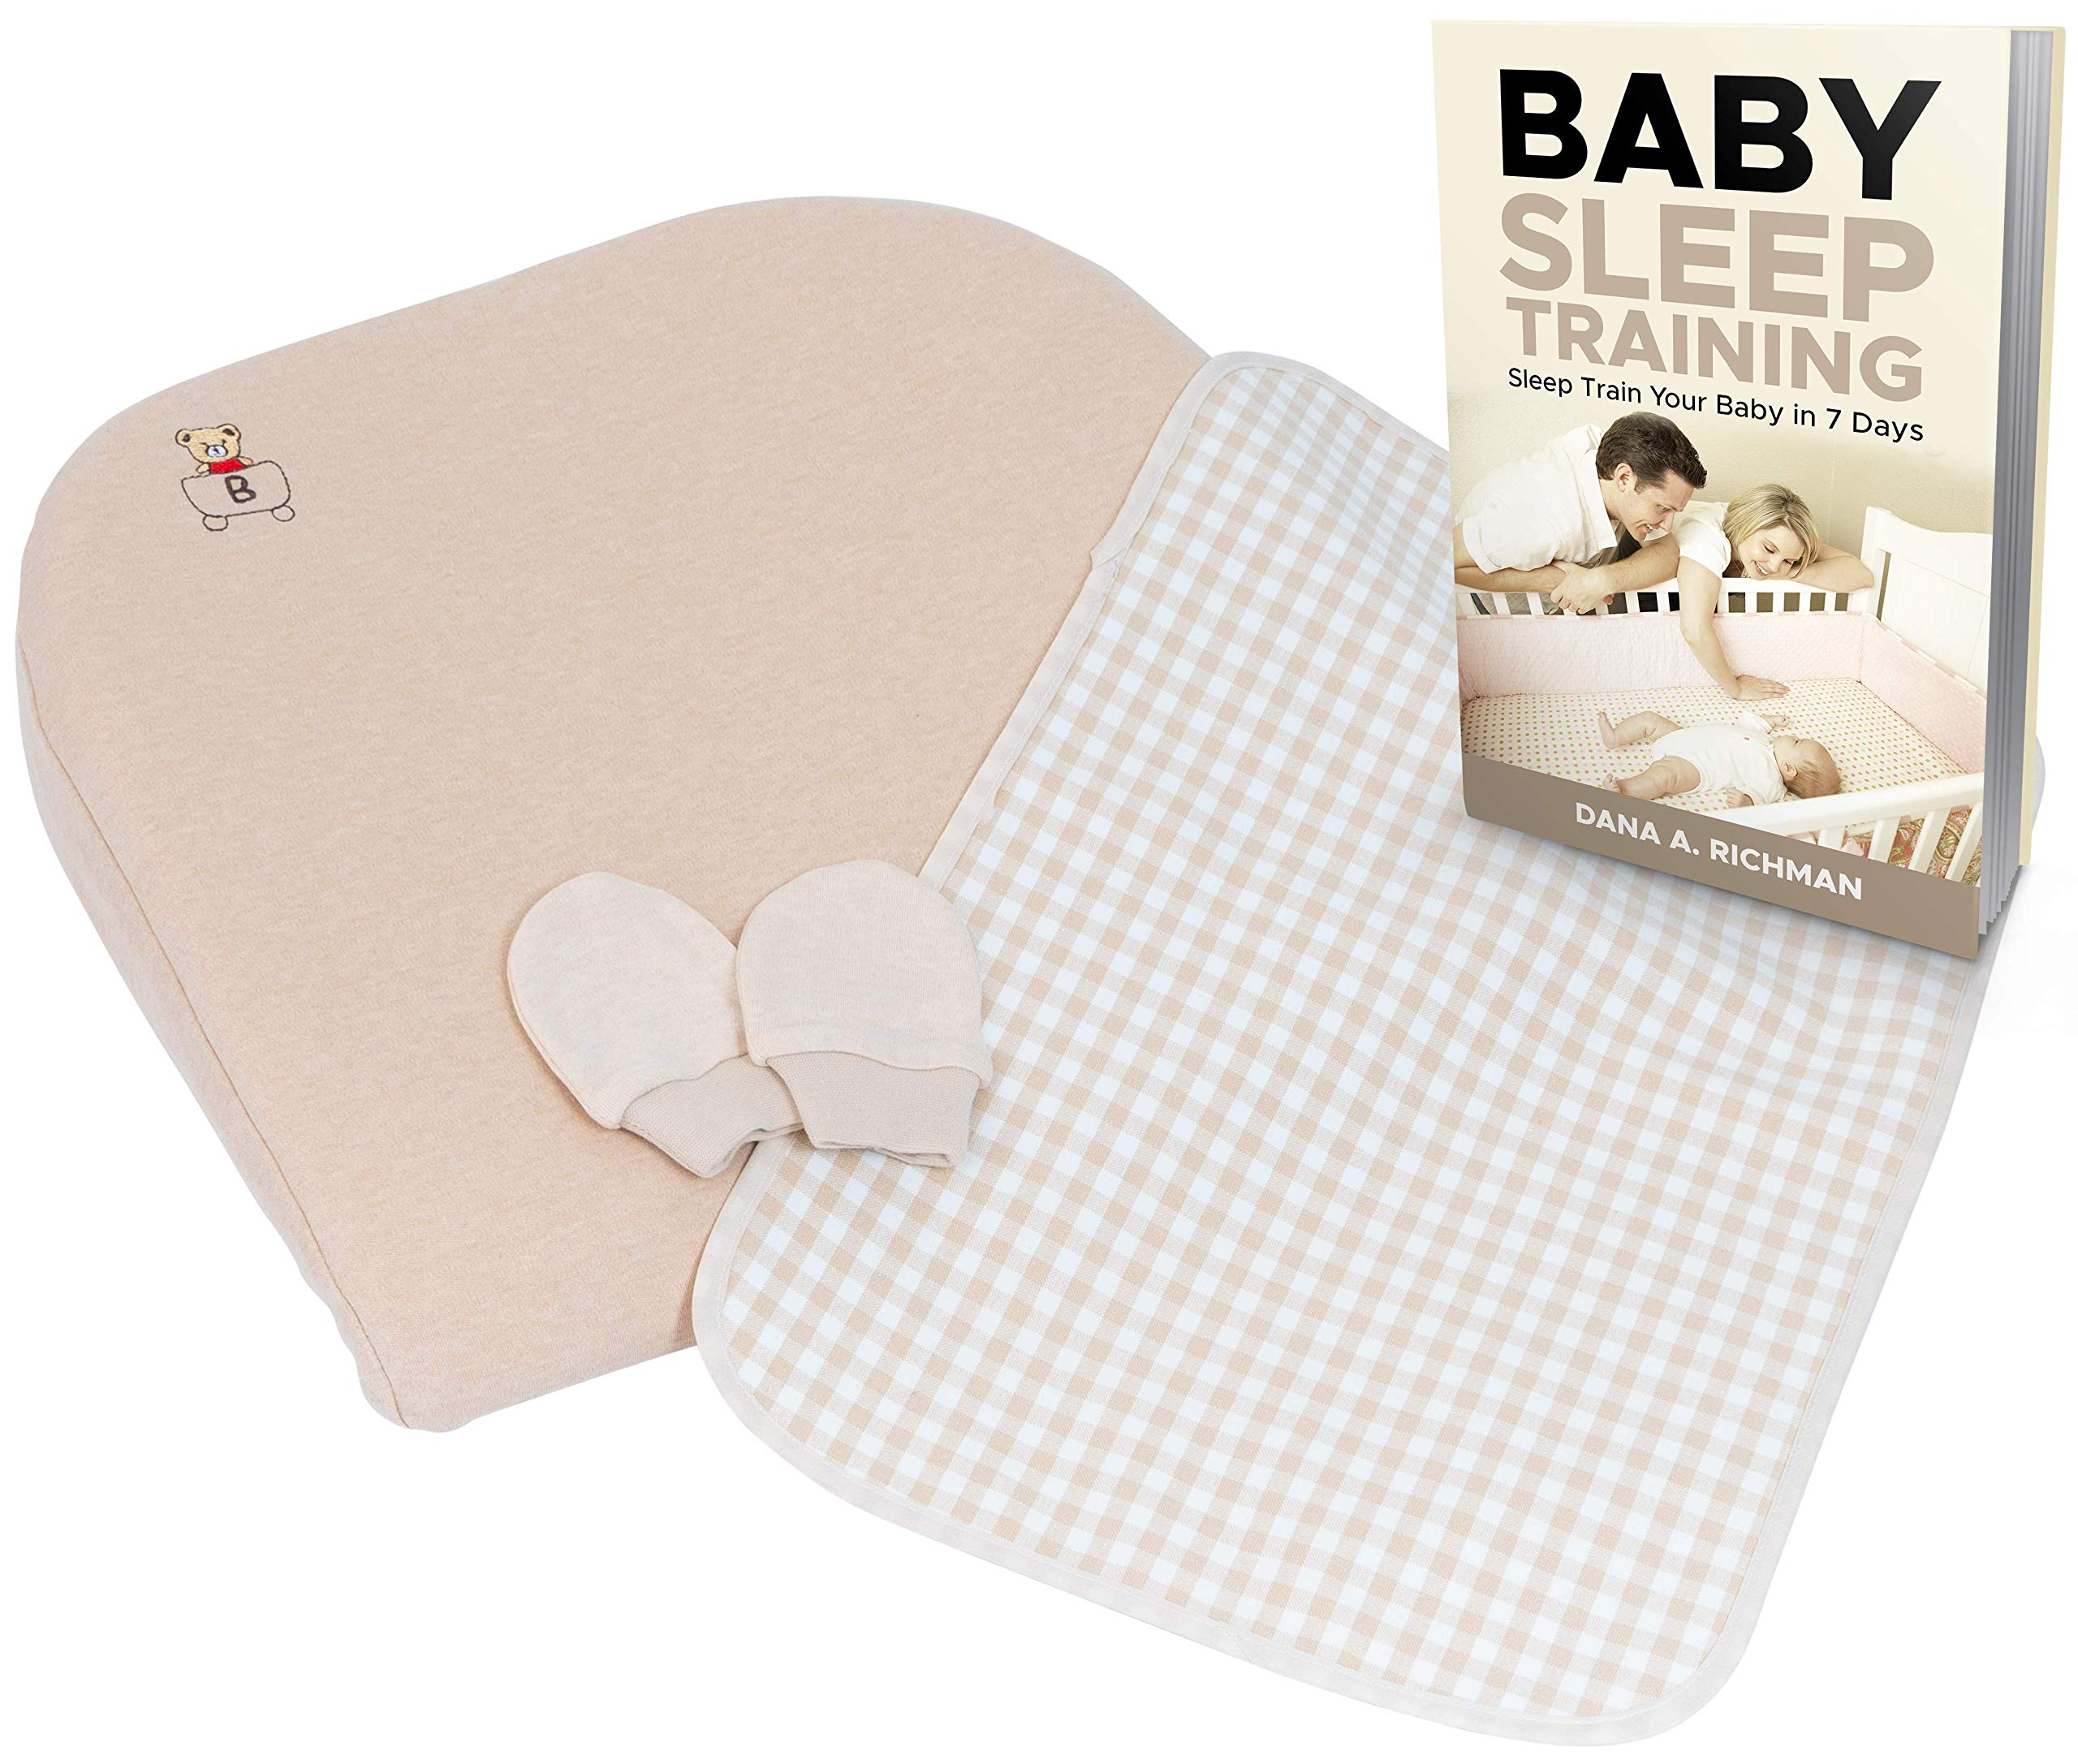 Nobletopia Baby Care Kit: Baby Wedge Pillow + No-Scratch Mittens + Changing Pad + eBook On Baby Sleep Training | Comfortable, Soft & Hypoallergenic | Universal Fit for Newborns, Boys & Girls